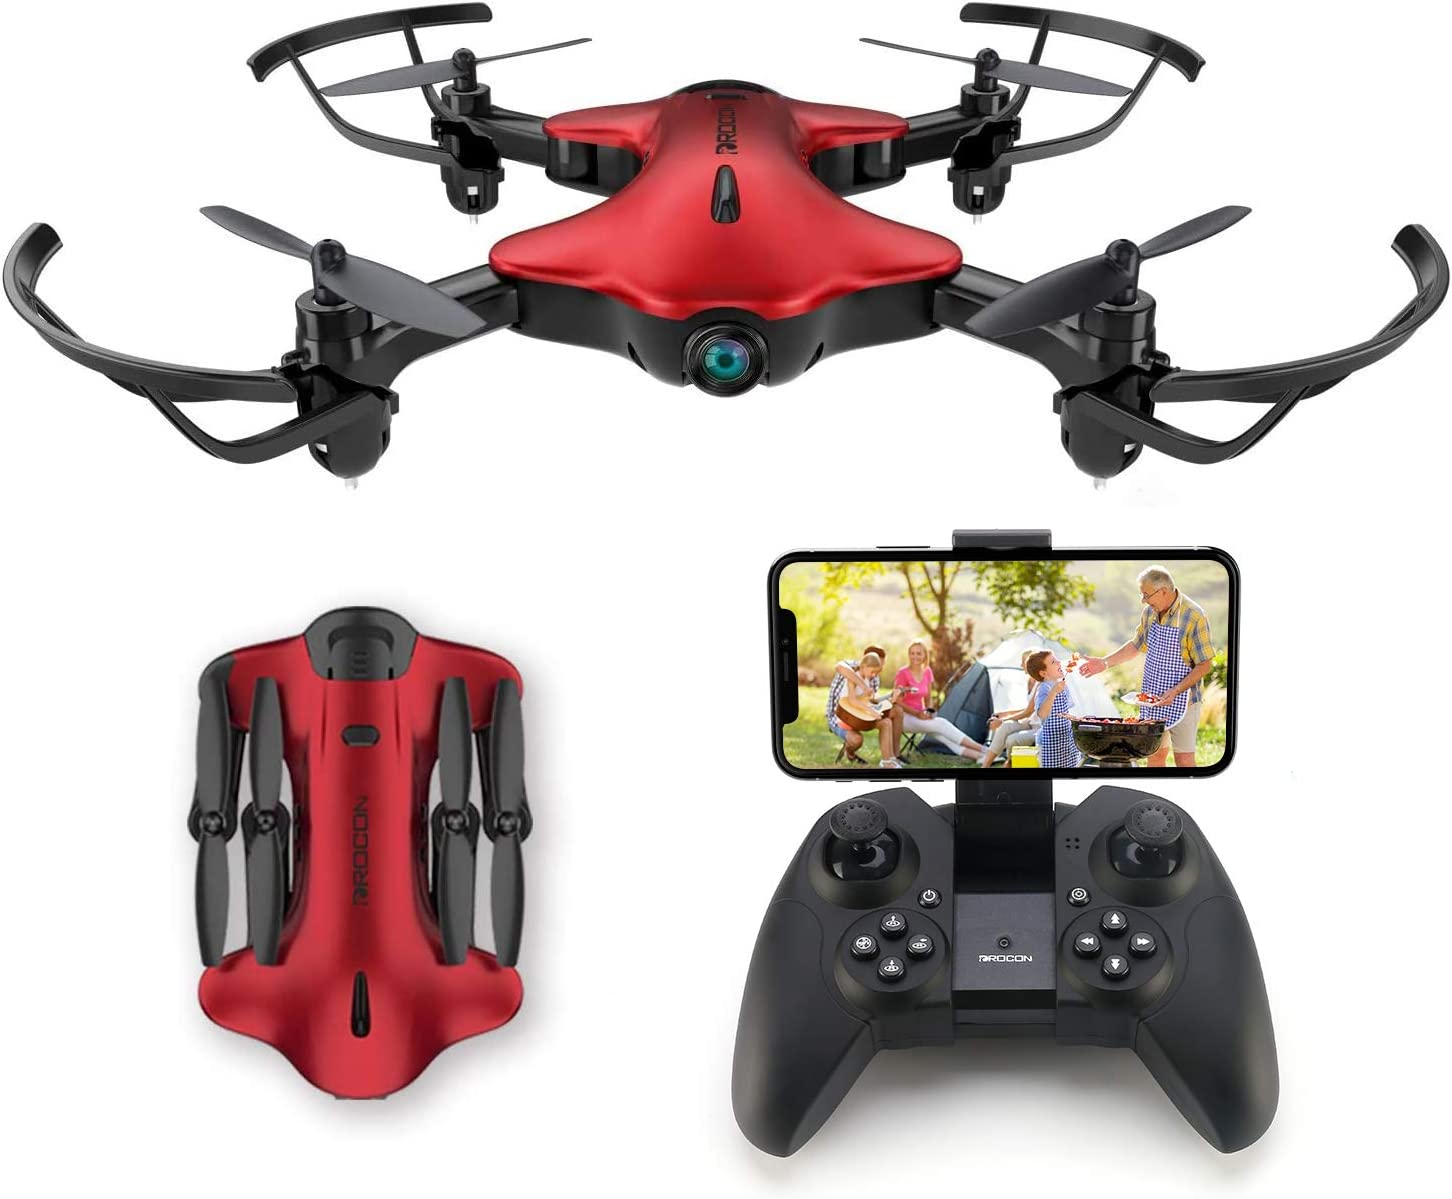 Drone for Kids, Spacekey FPV Wi-Fi Drone with Camera 720P HD, Real-time Video Feed, Great Drone for Beginners, Quadcopter Drone...